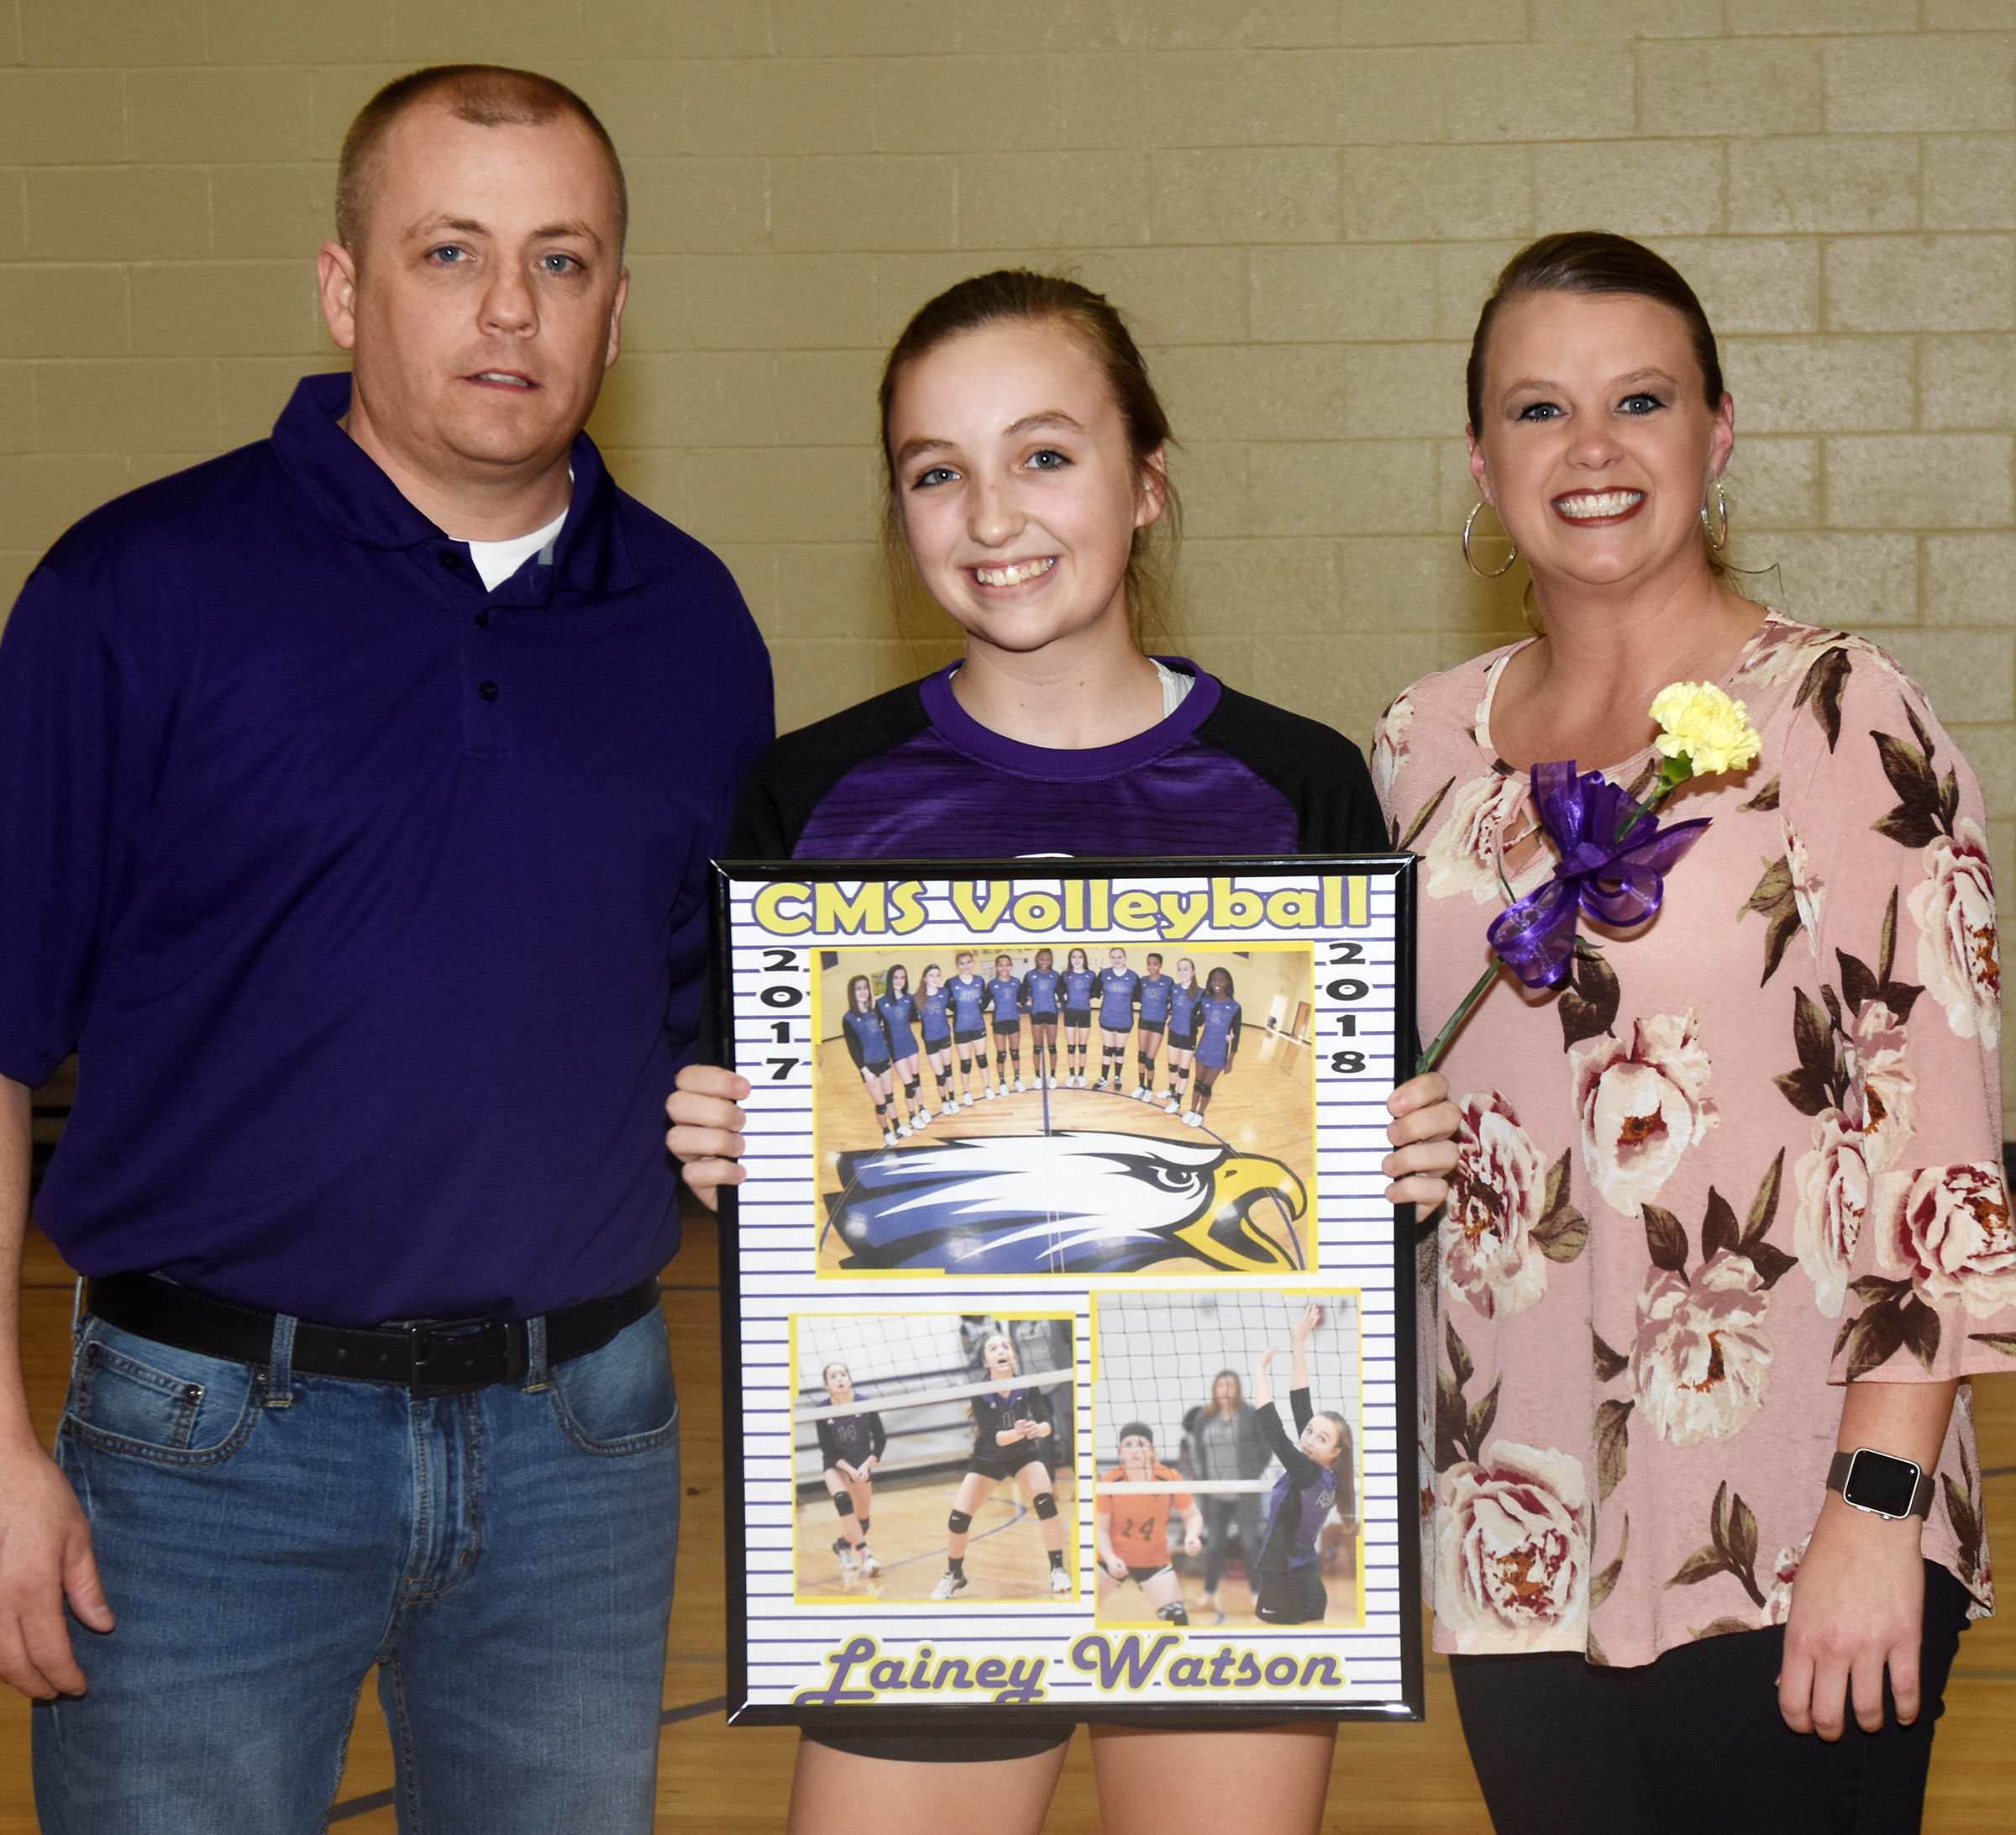 CMS eighth-grader Lainey Watson is honored for her dedication and hard work this season. She is pictured with her parents, Jeff Watson and Jessica Watson.